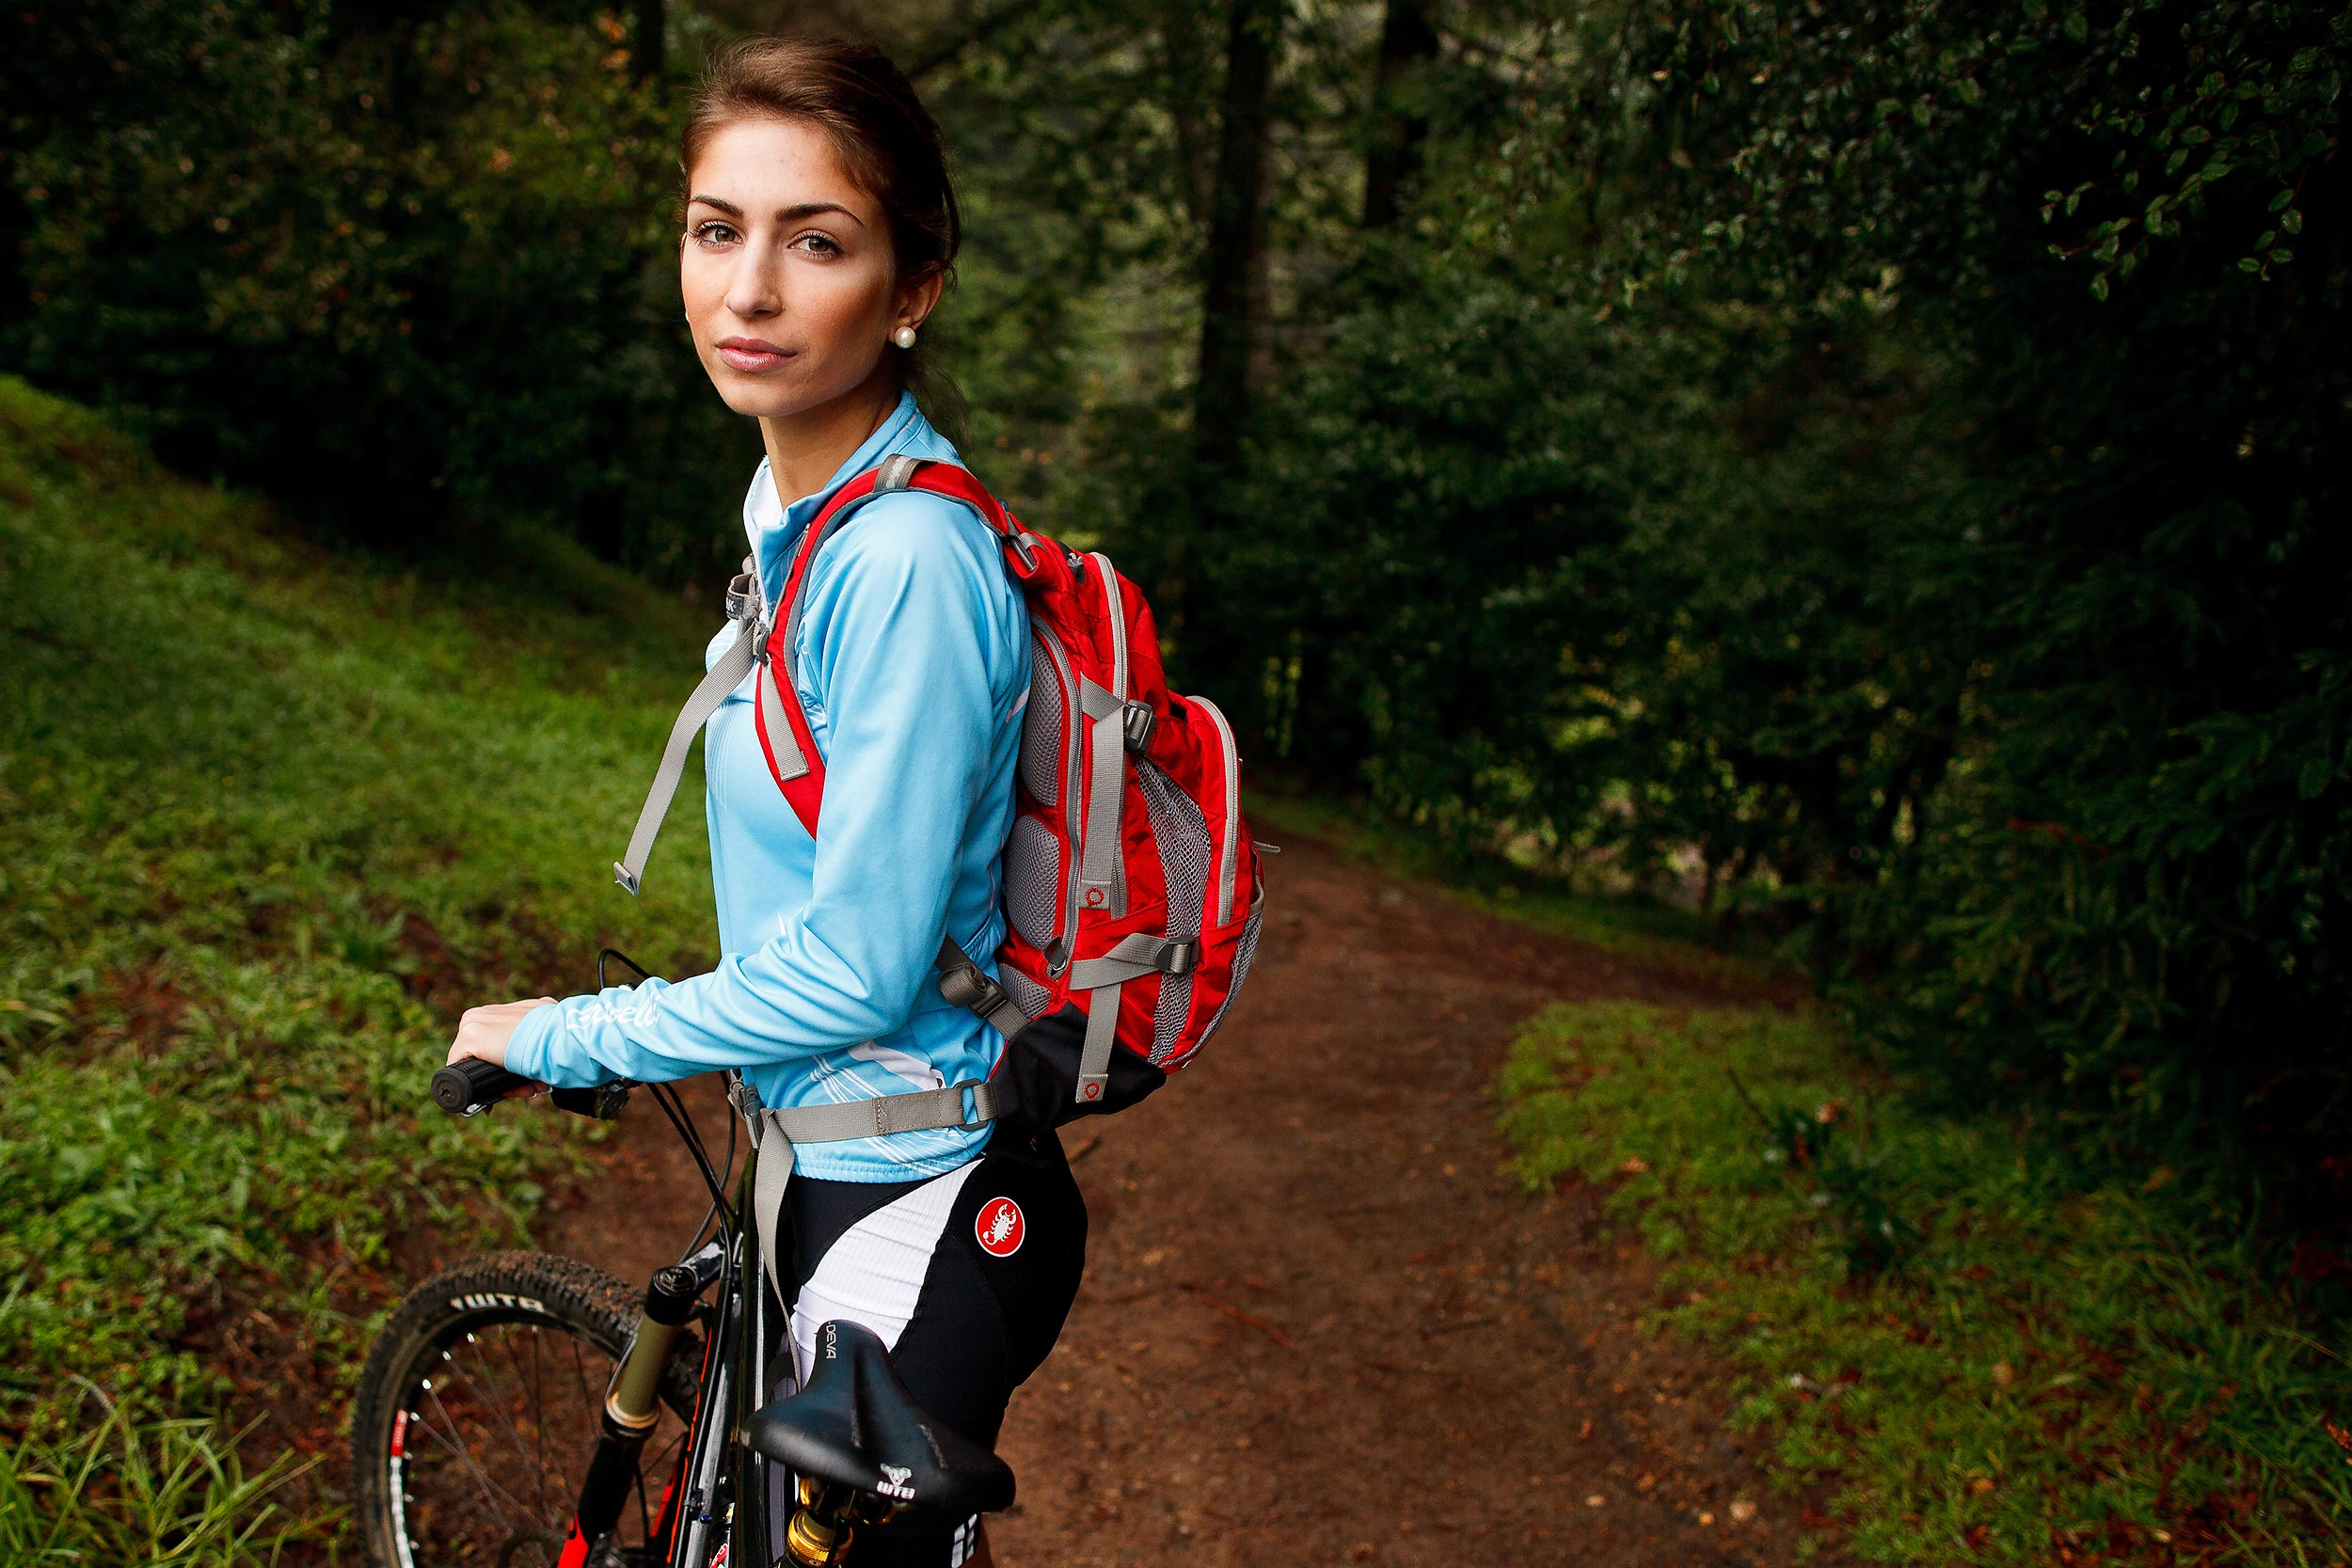 steve-active-lifestyle-moutain-bike-fitness-emily-highstreet083